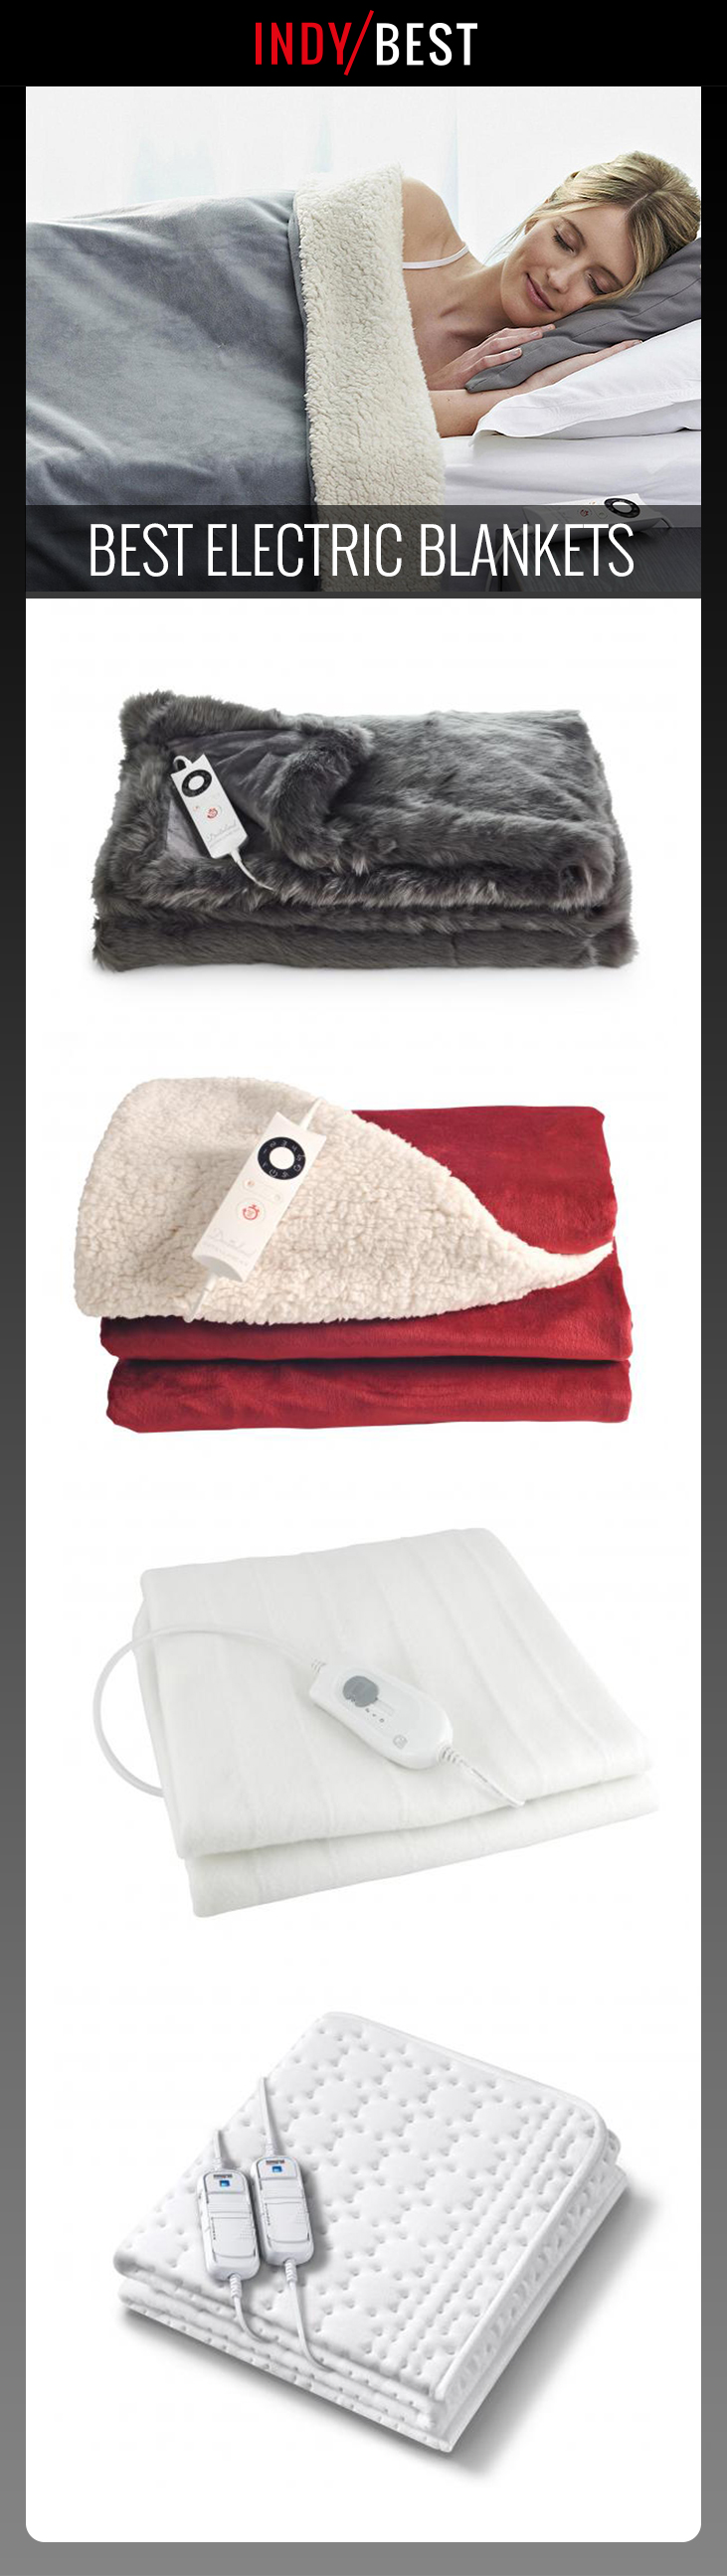 10 best electric blankets to keep you warm through the